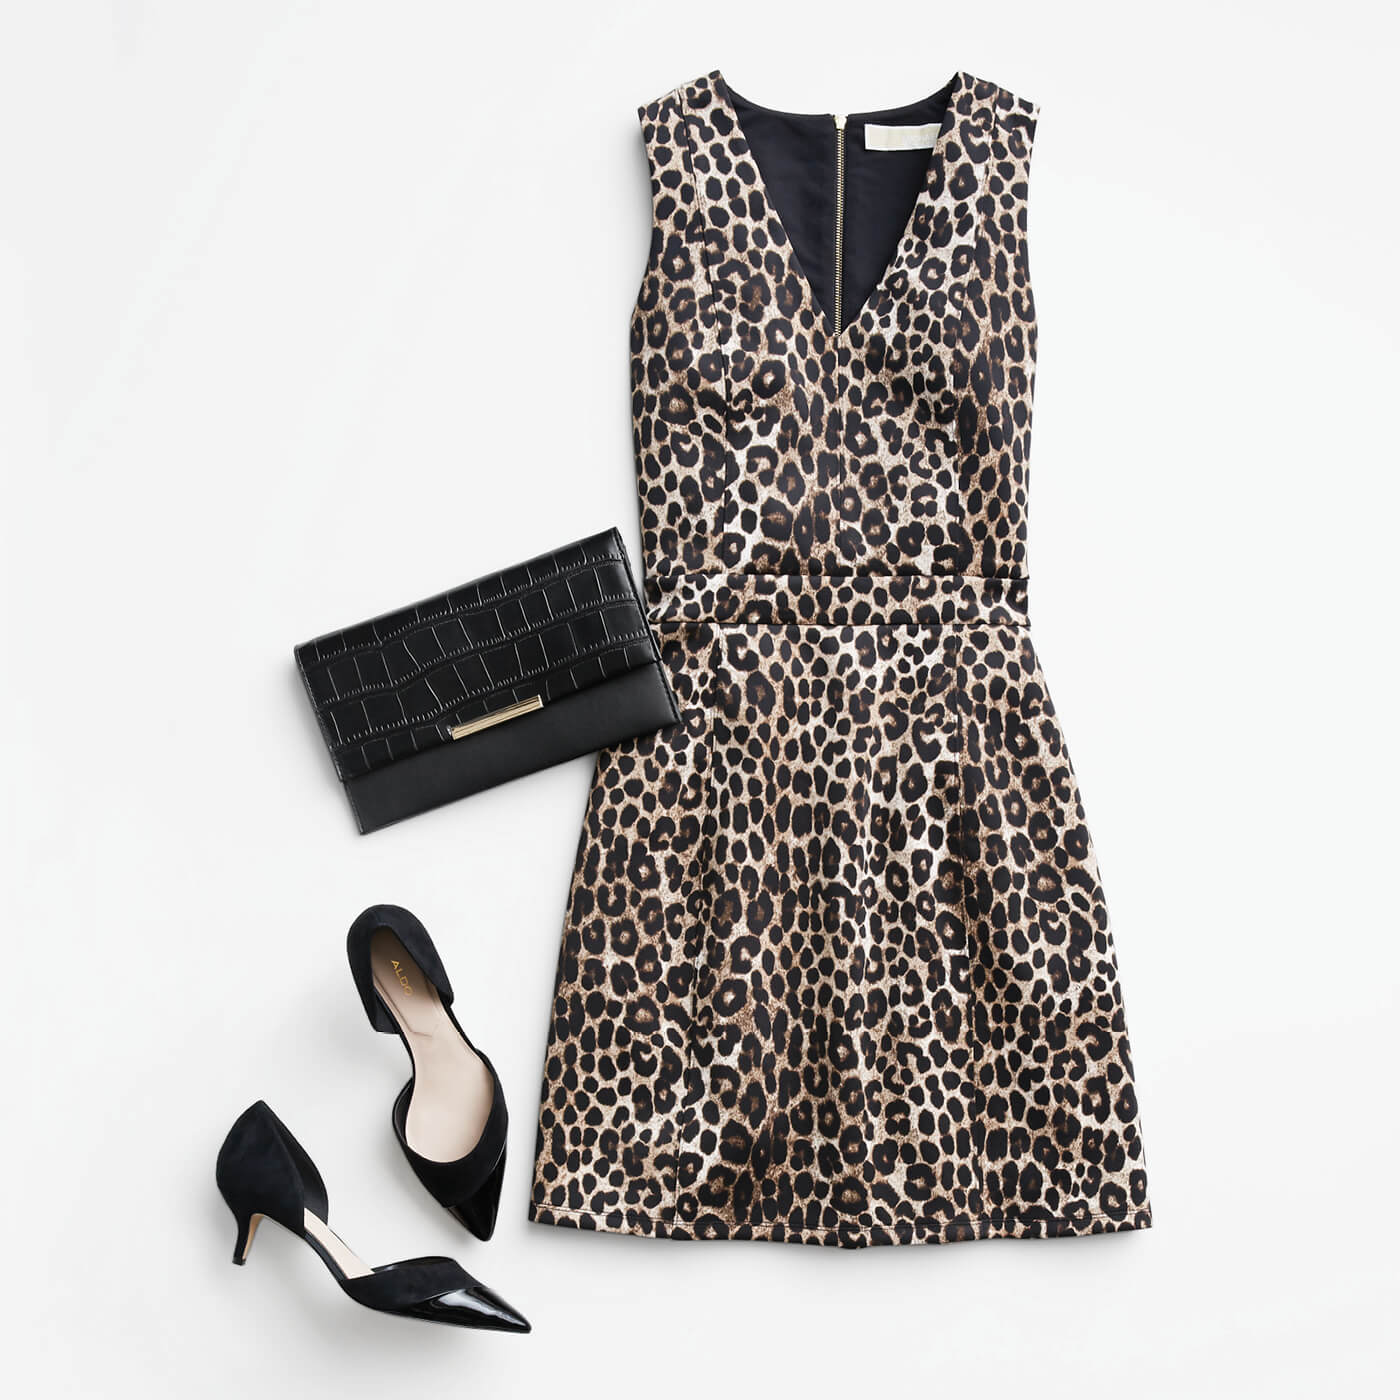 T3_W20_BLG_AAS_Trending Animal Prints_382559339_3